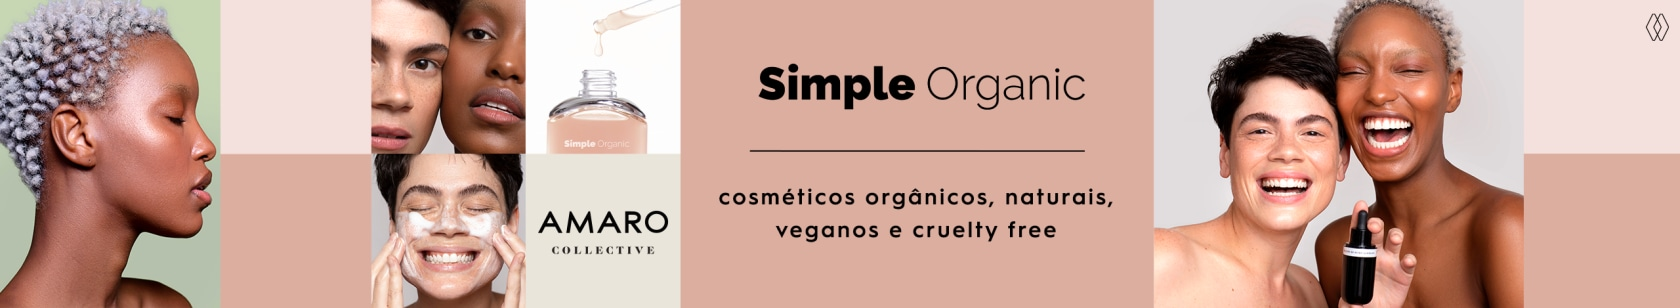 SIMPLE ORGANIC | AMARO COLLECTIVE